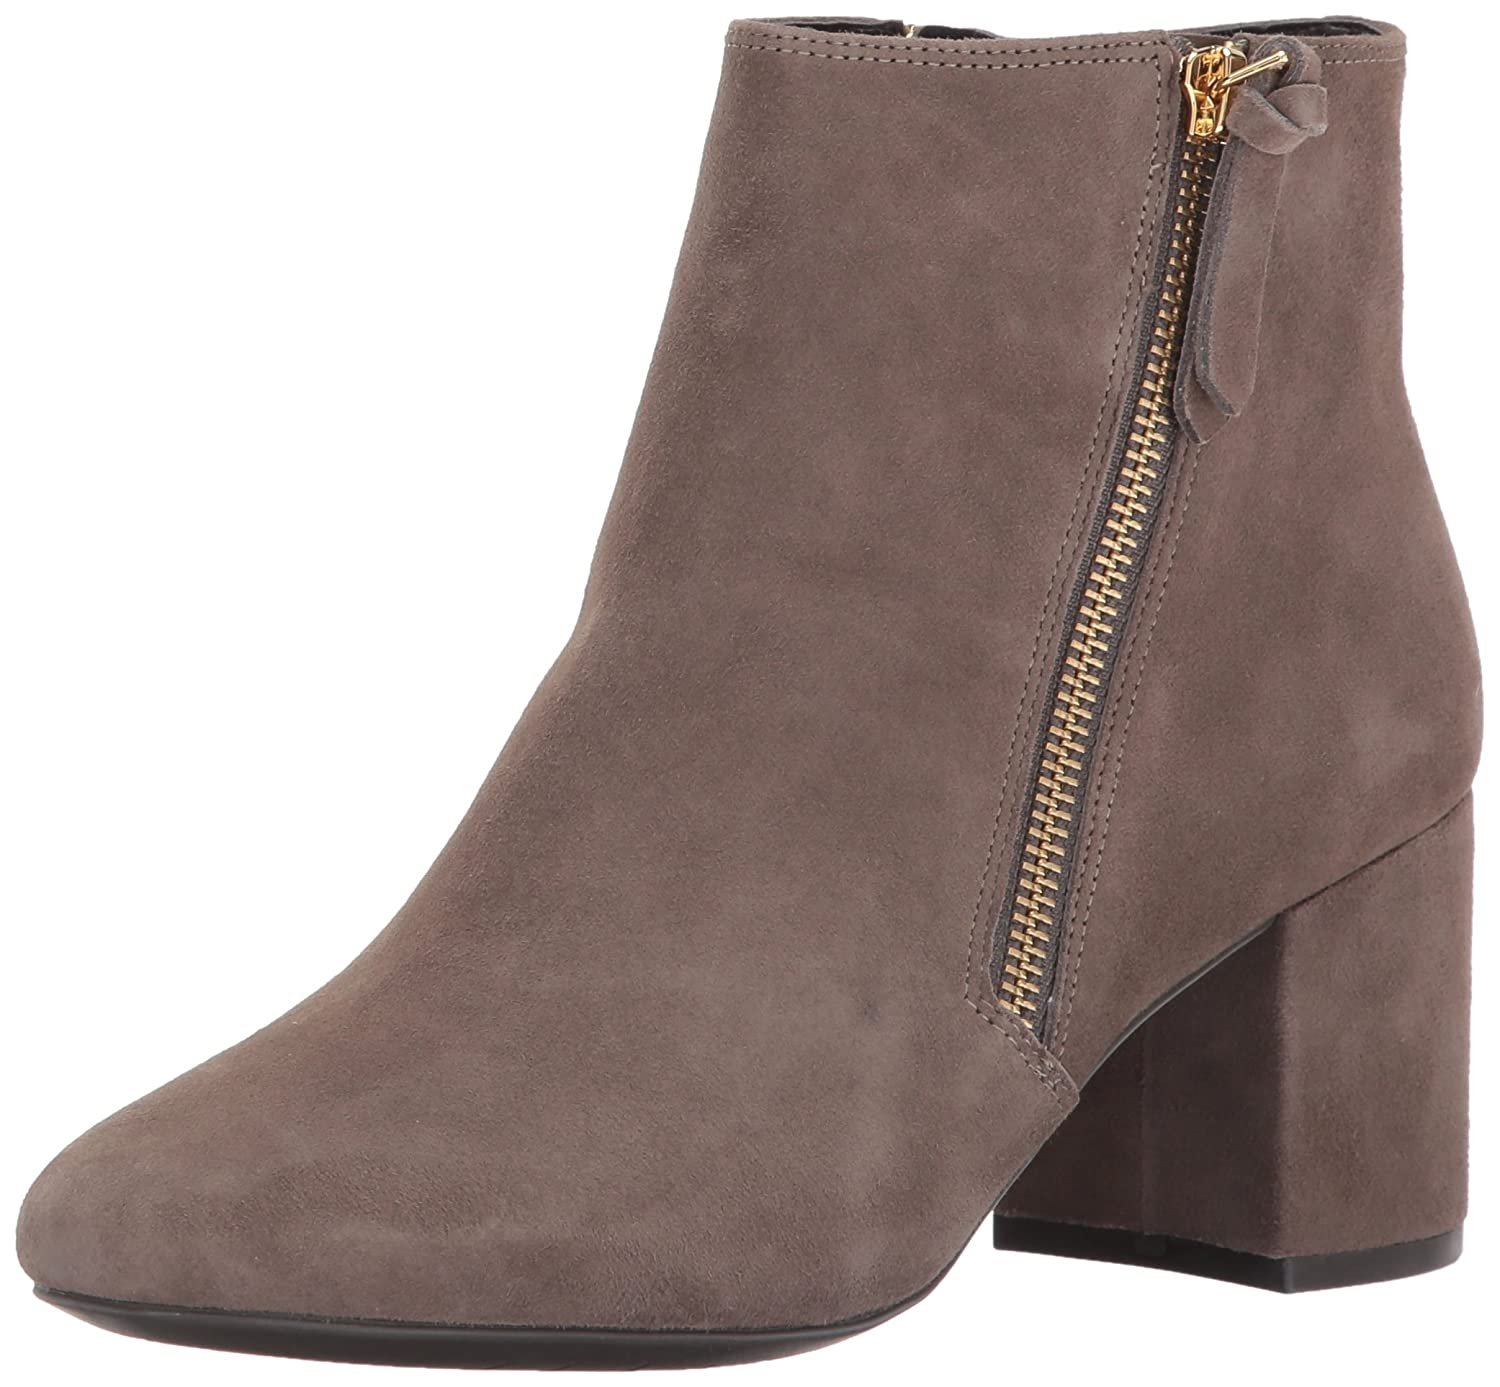 Cole Haan Women's Saylor Grand Bootie II Ankle Boot B01N6WLIQ8 8 B(M) US|Morel Suede